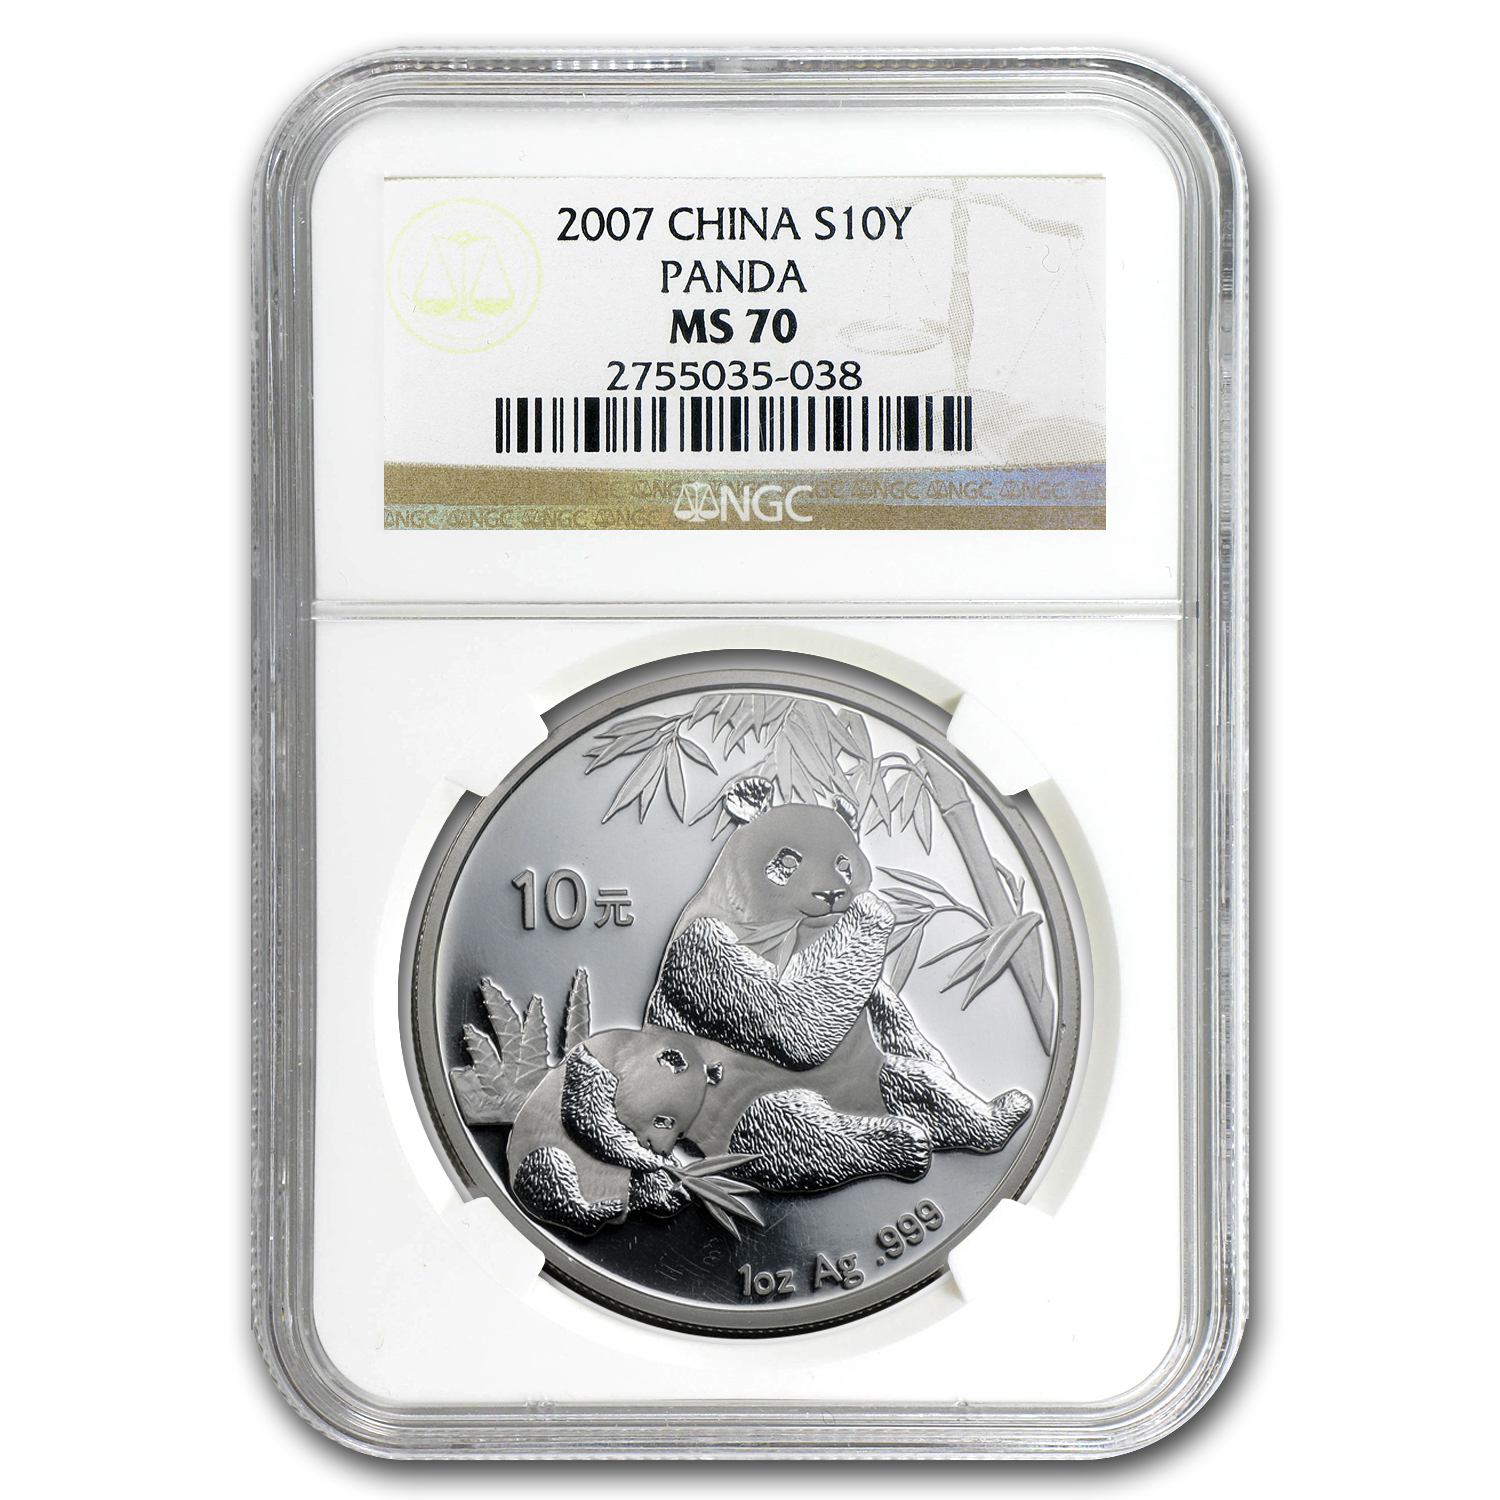 2007 China 1 oz Silver Panda MS-70 NGC